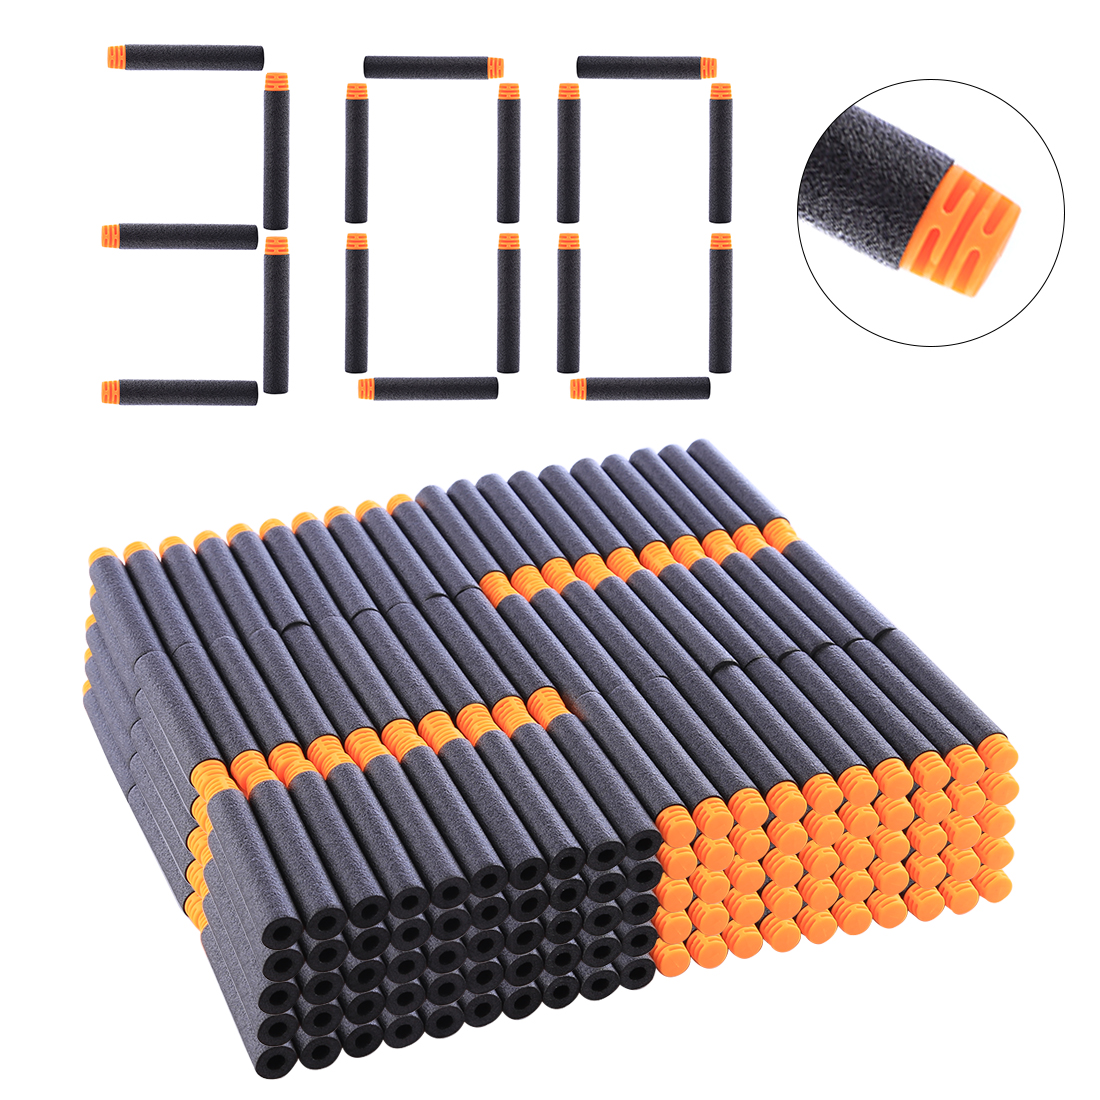 NFSTRIKE 300Pcs/400Pcs/1000Pcs Hollow Foam High Buffered Soft Bullet Flat Head Soft Darts For Nerf - Orange Head + Black Sponge